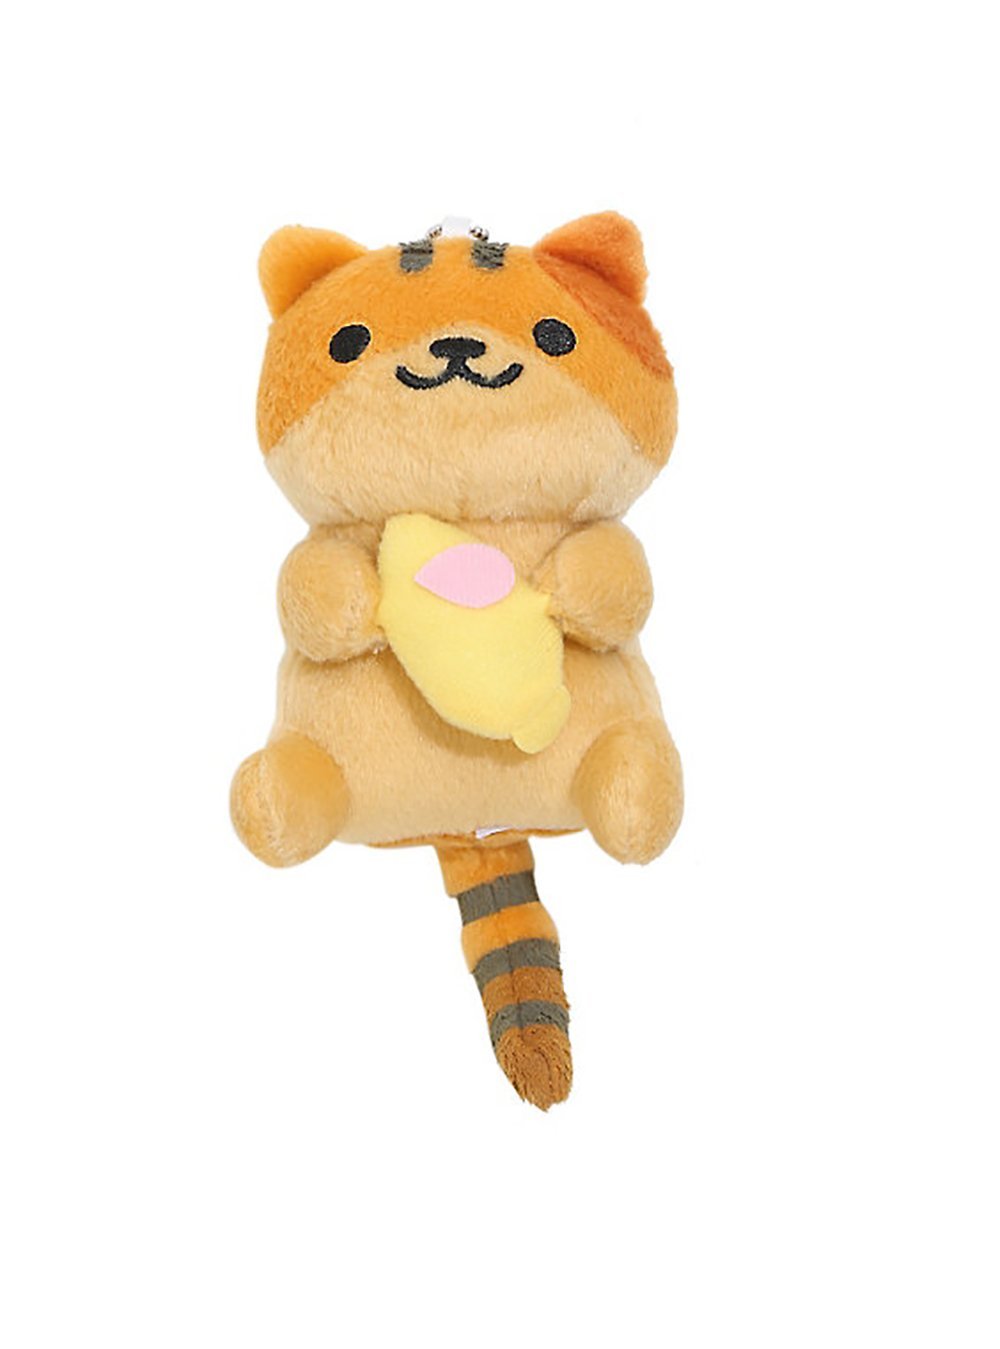 Neko Atsume ねこあつめ Princess Small Plush Toy Japanese Special Collection Vol 4 6'' by Nekoatsume